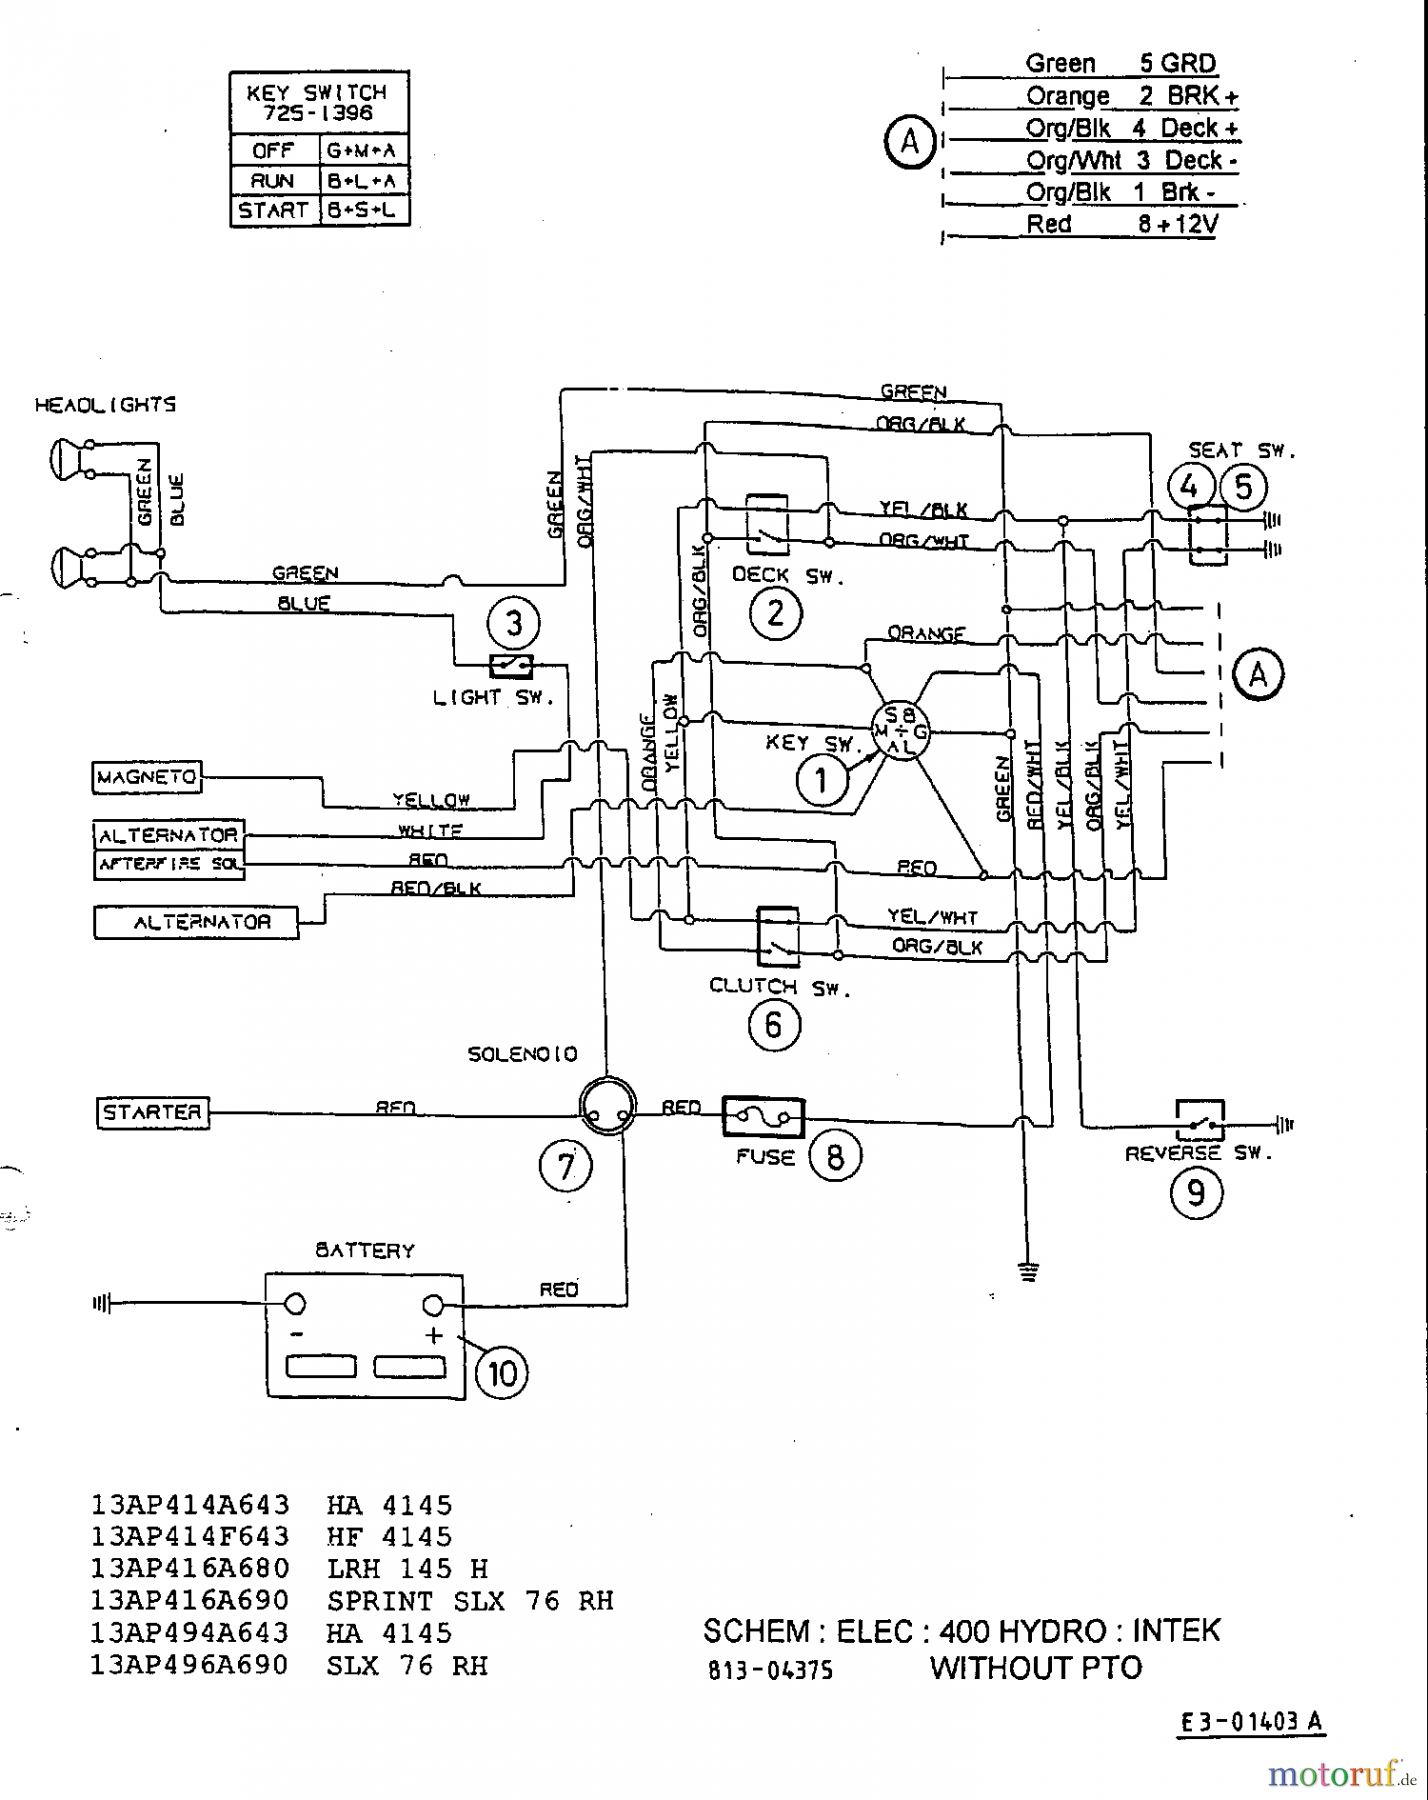 hight resolution of toro lawn mower magneto wiring diagram wiring diagram g11 toro zero turn 74721 wiring diagram